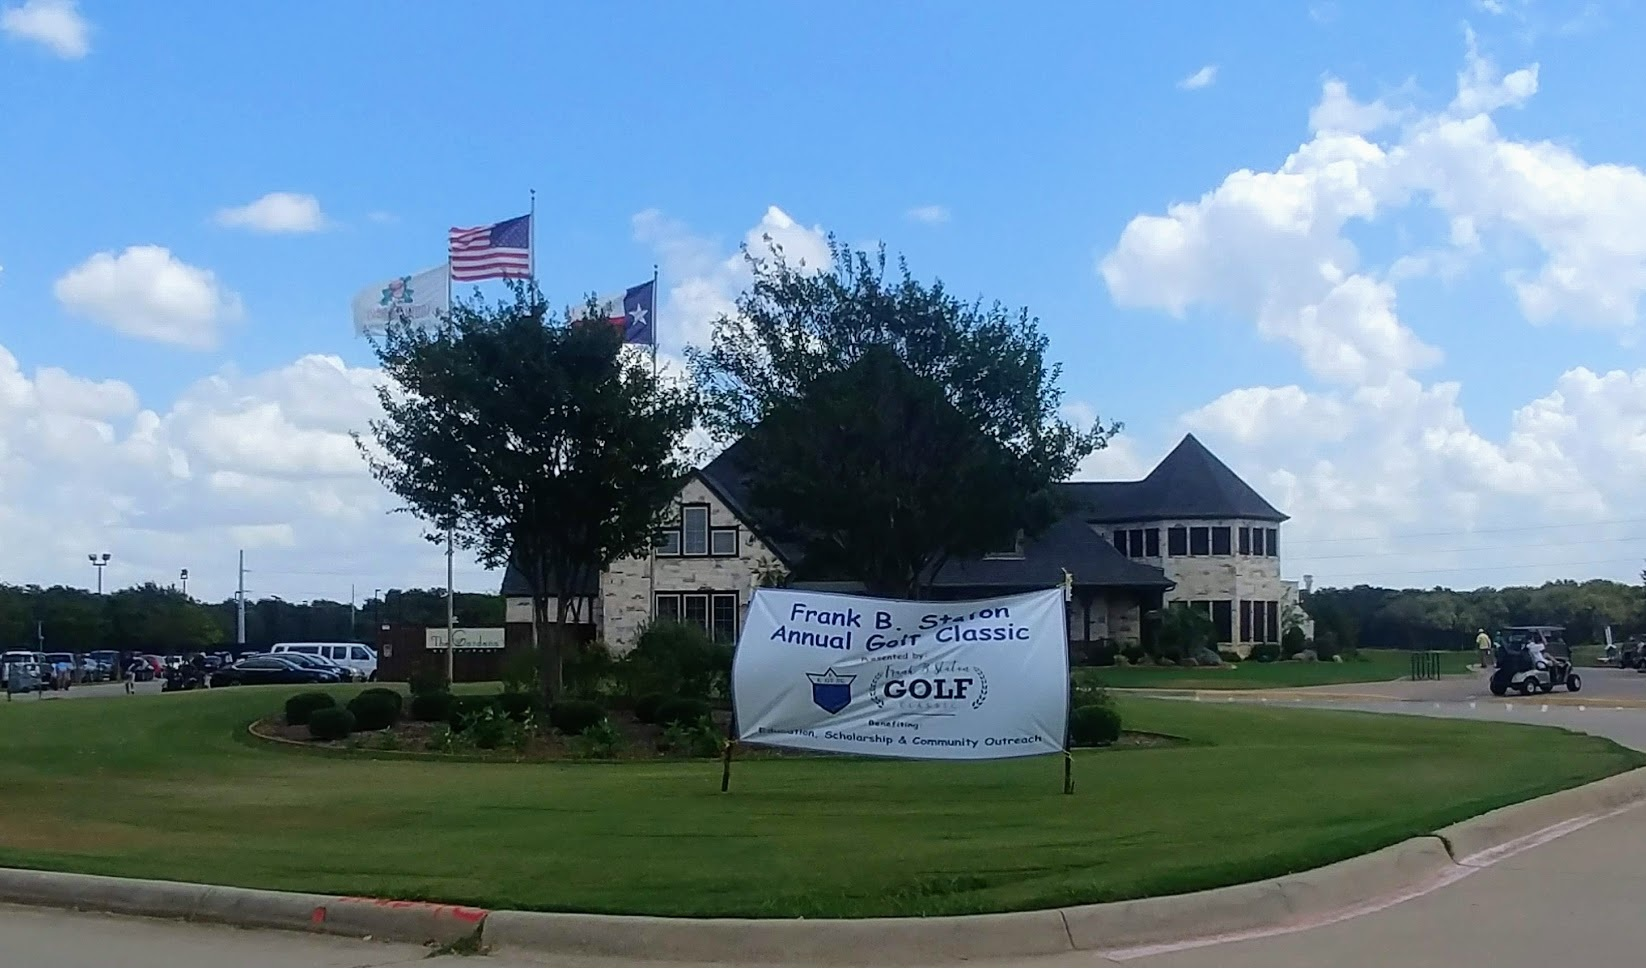 The Frank B Staton Golf Classic Hosted by KPC#89 gallery image #24